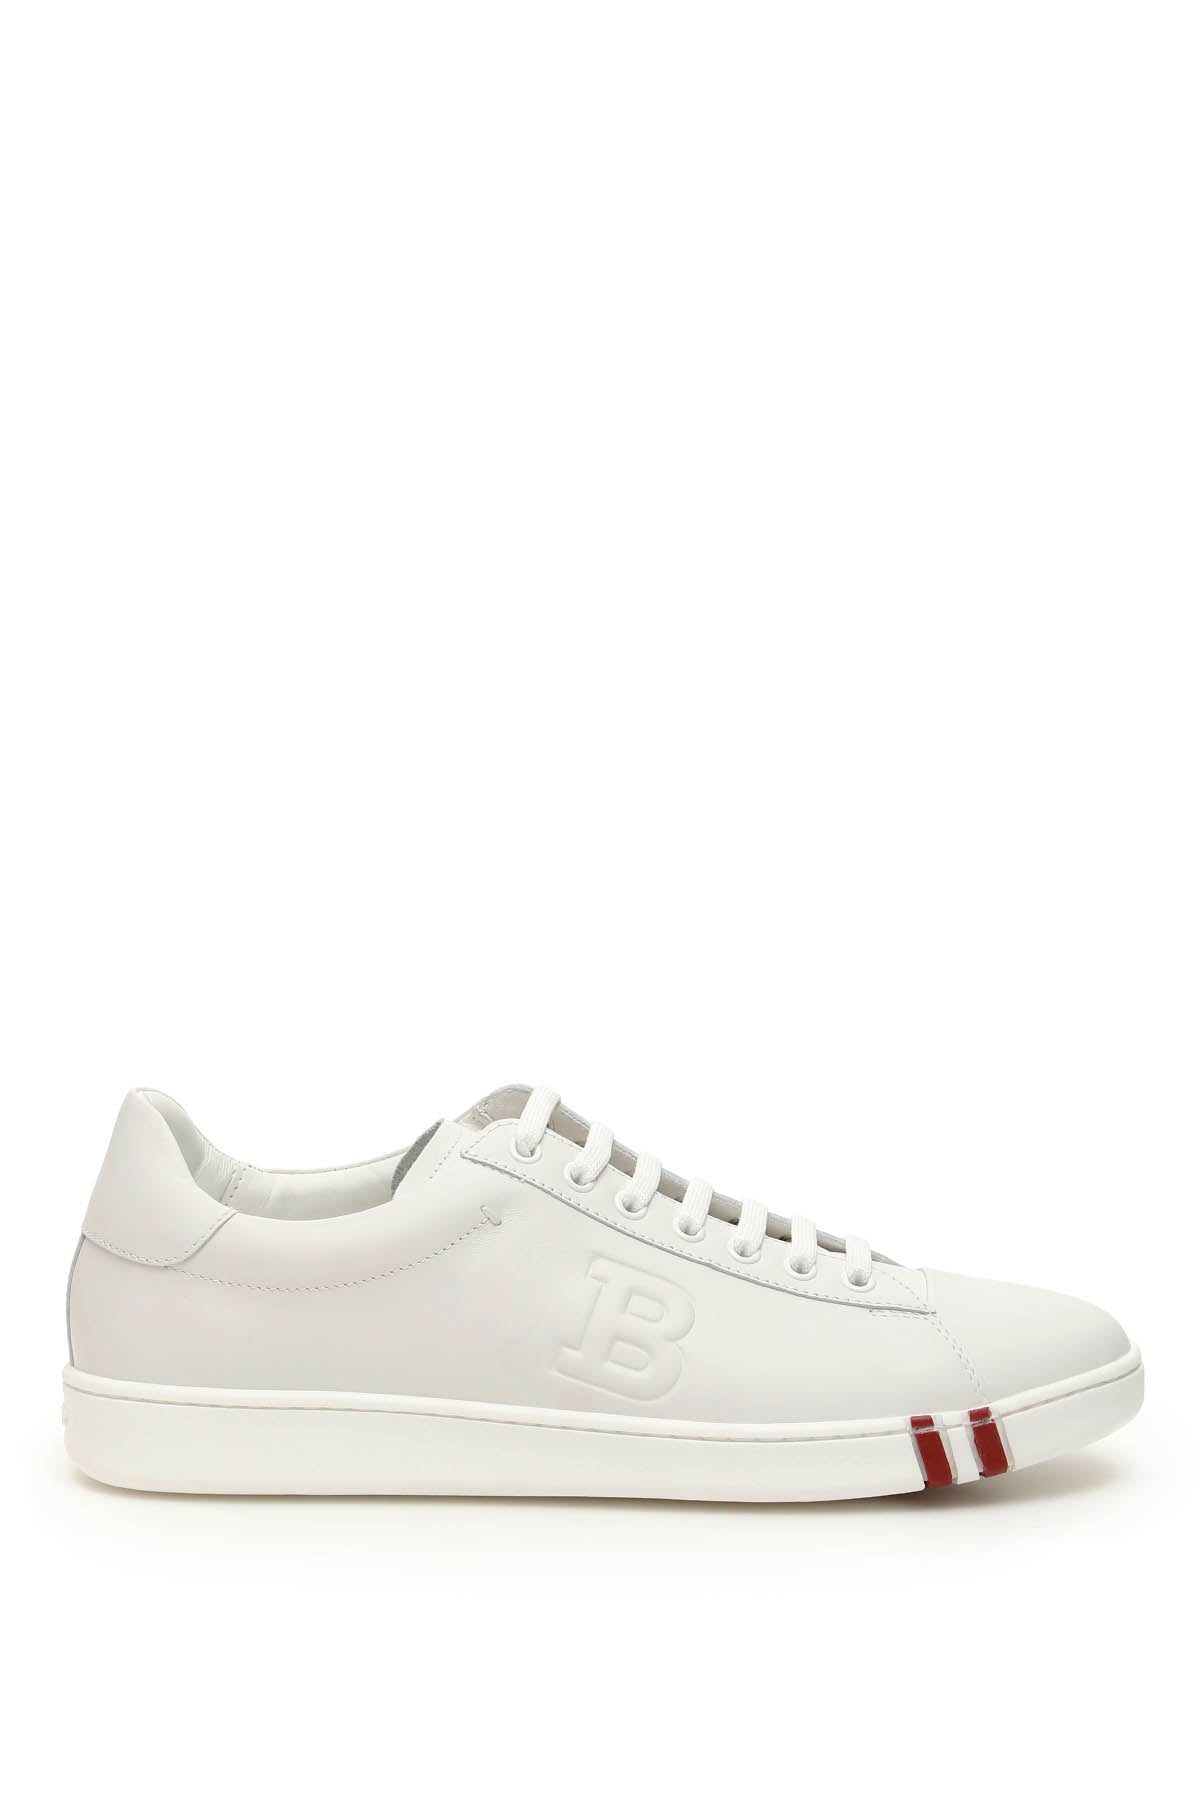 Bally Leathers BALLY ASHER LOW